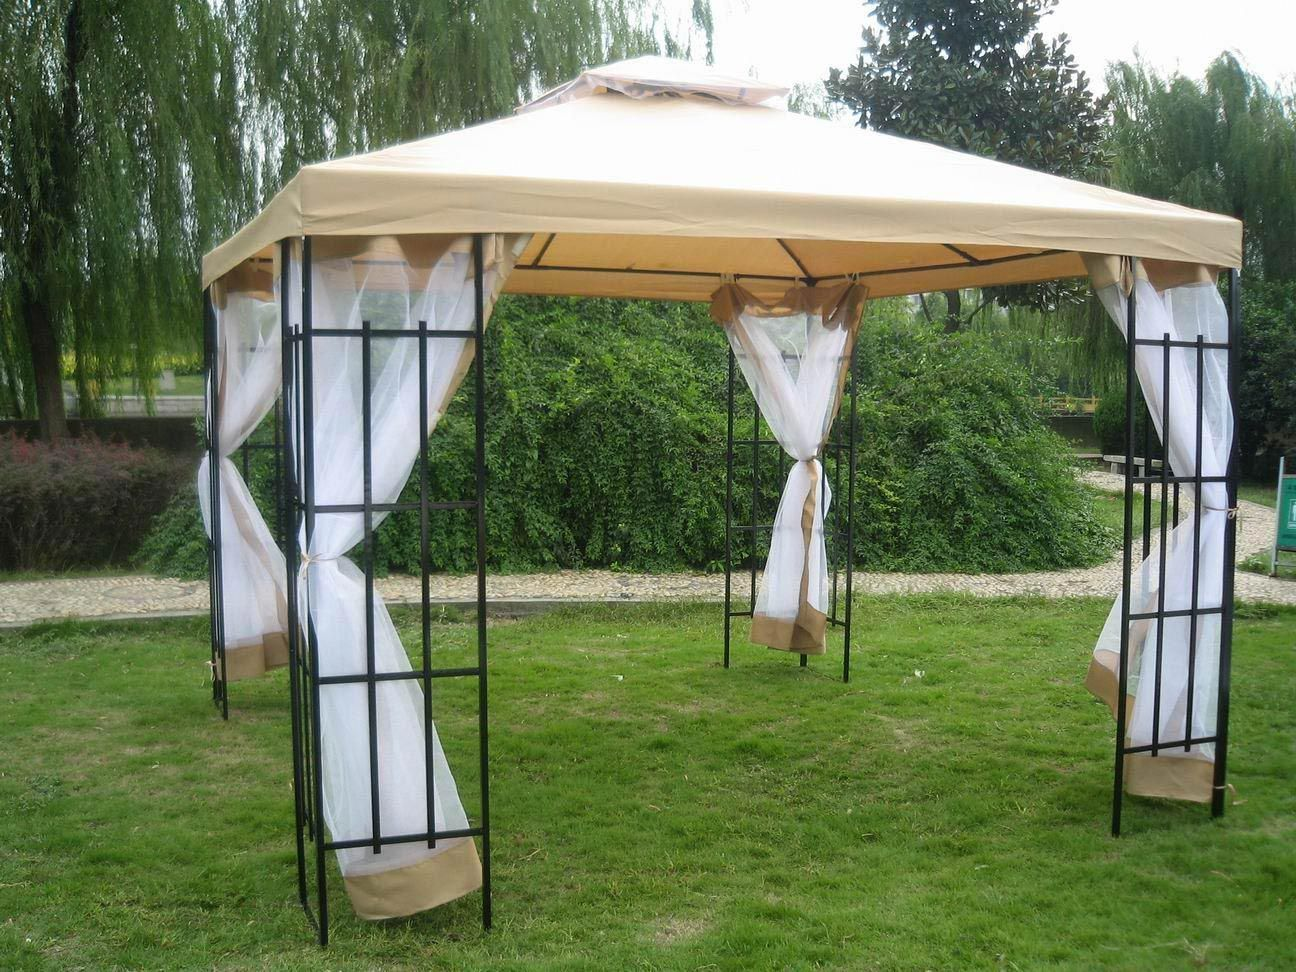 I Am Really Liking This Theme And Arrangement Terrific Motivation If You Re Trying To Get Ideas For Screenedgazebos Patio Tents Gazebo Tent Canopy Outdoor